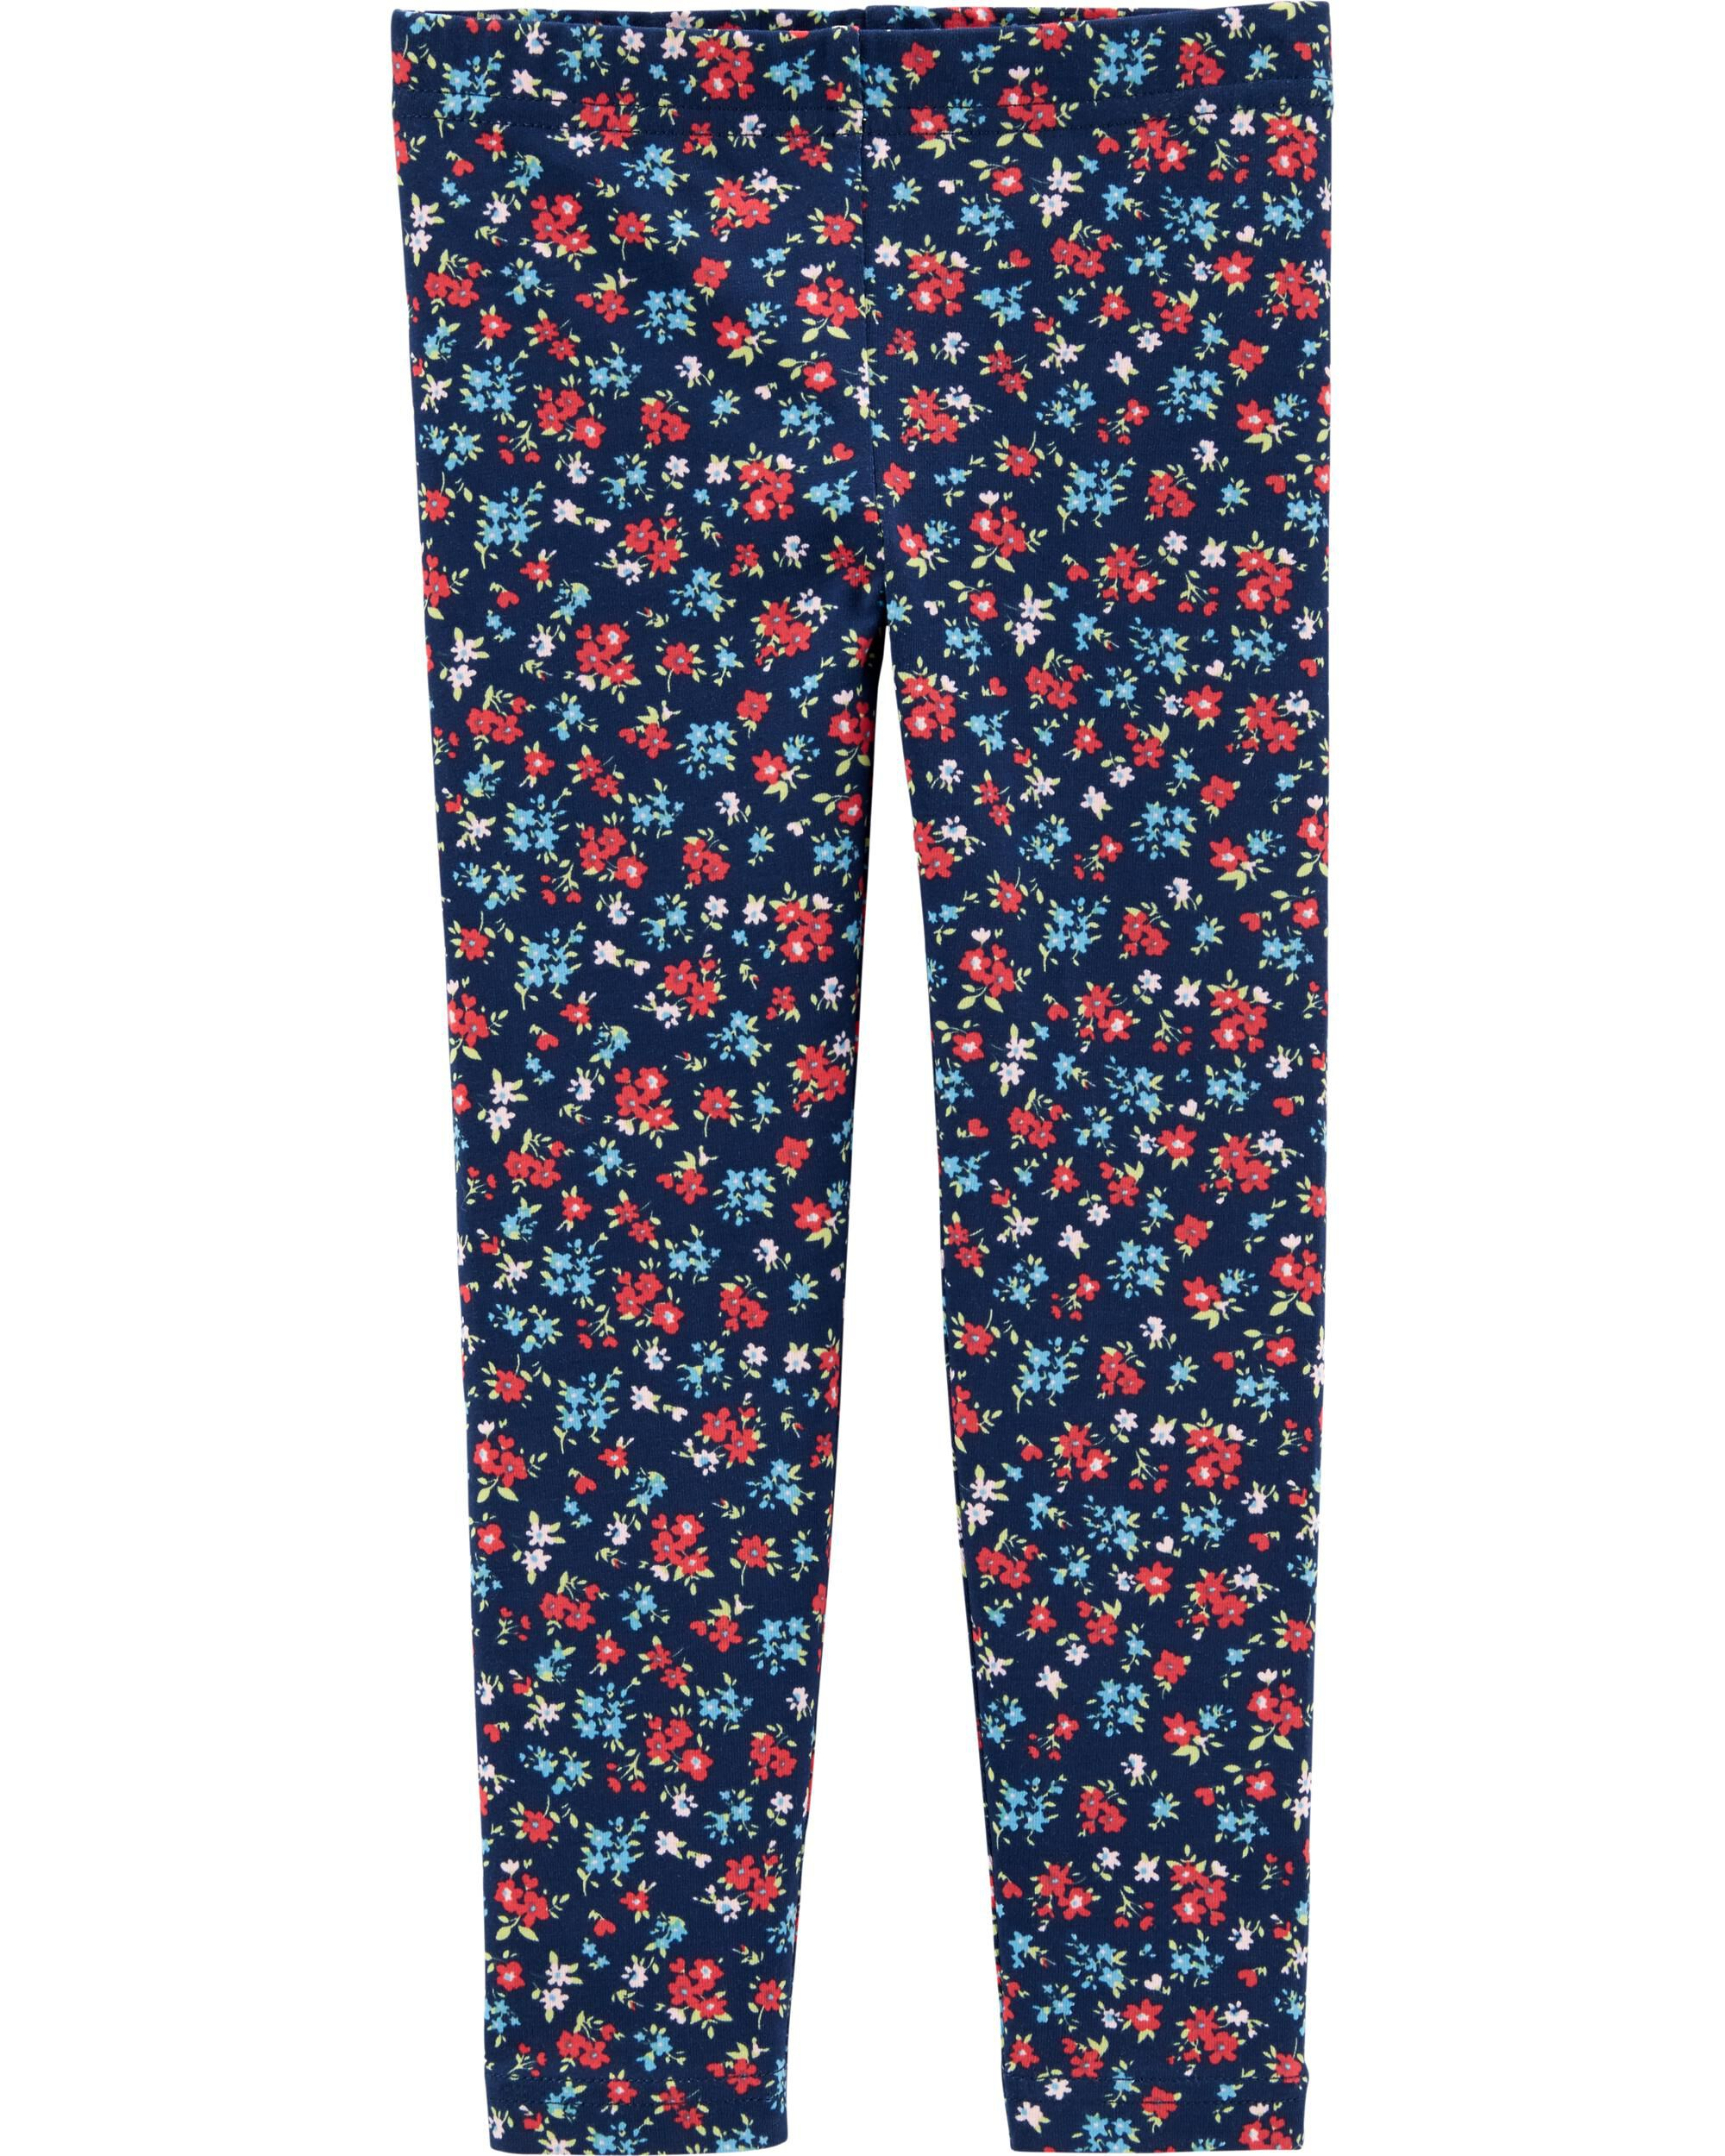 *Clearance*  Floral Leggings